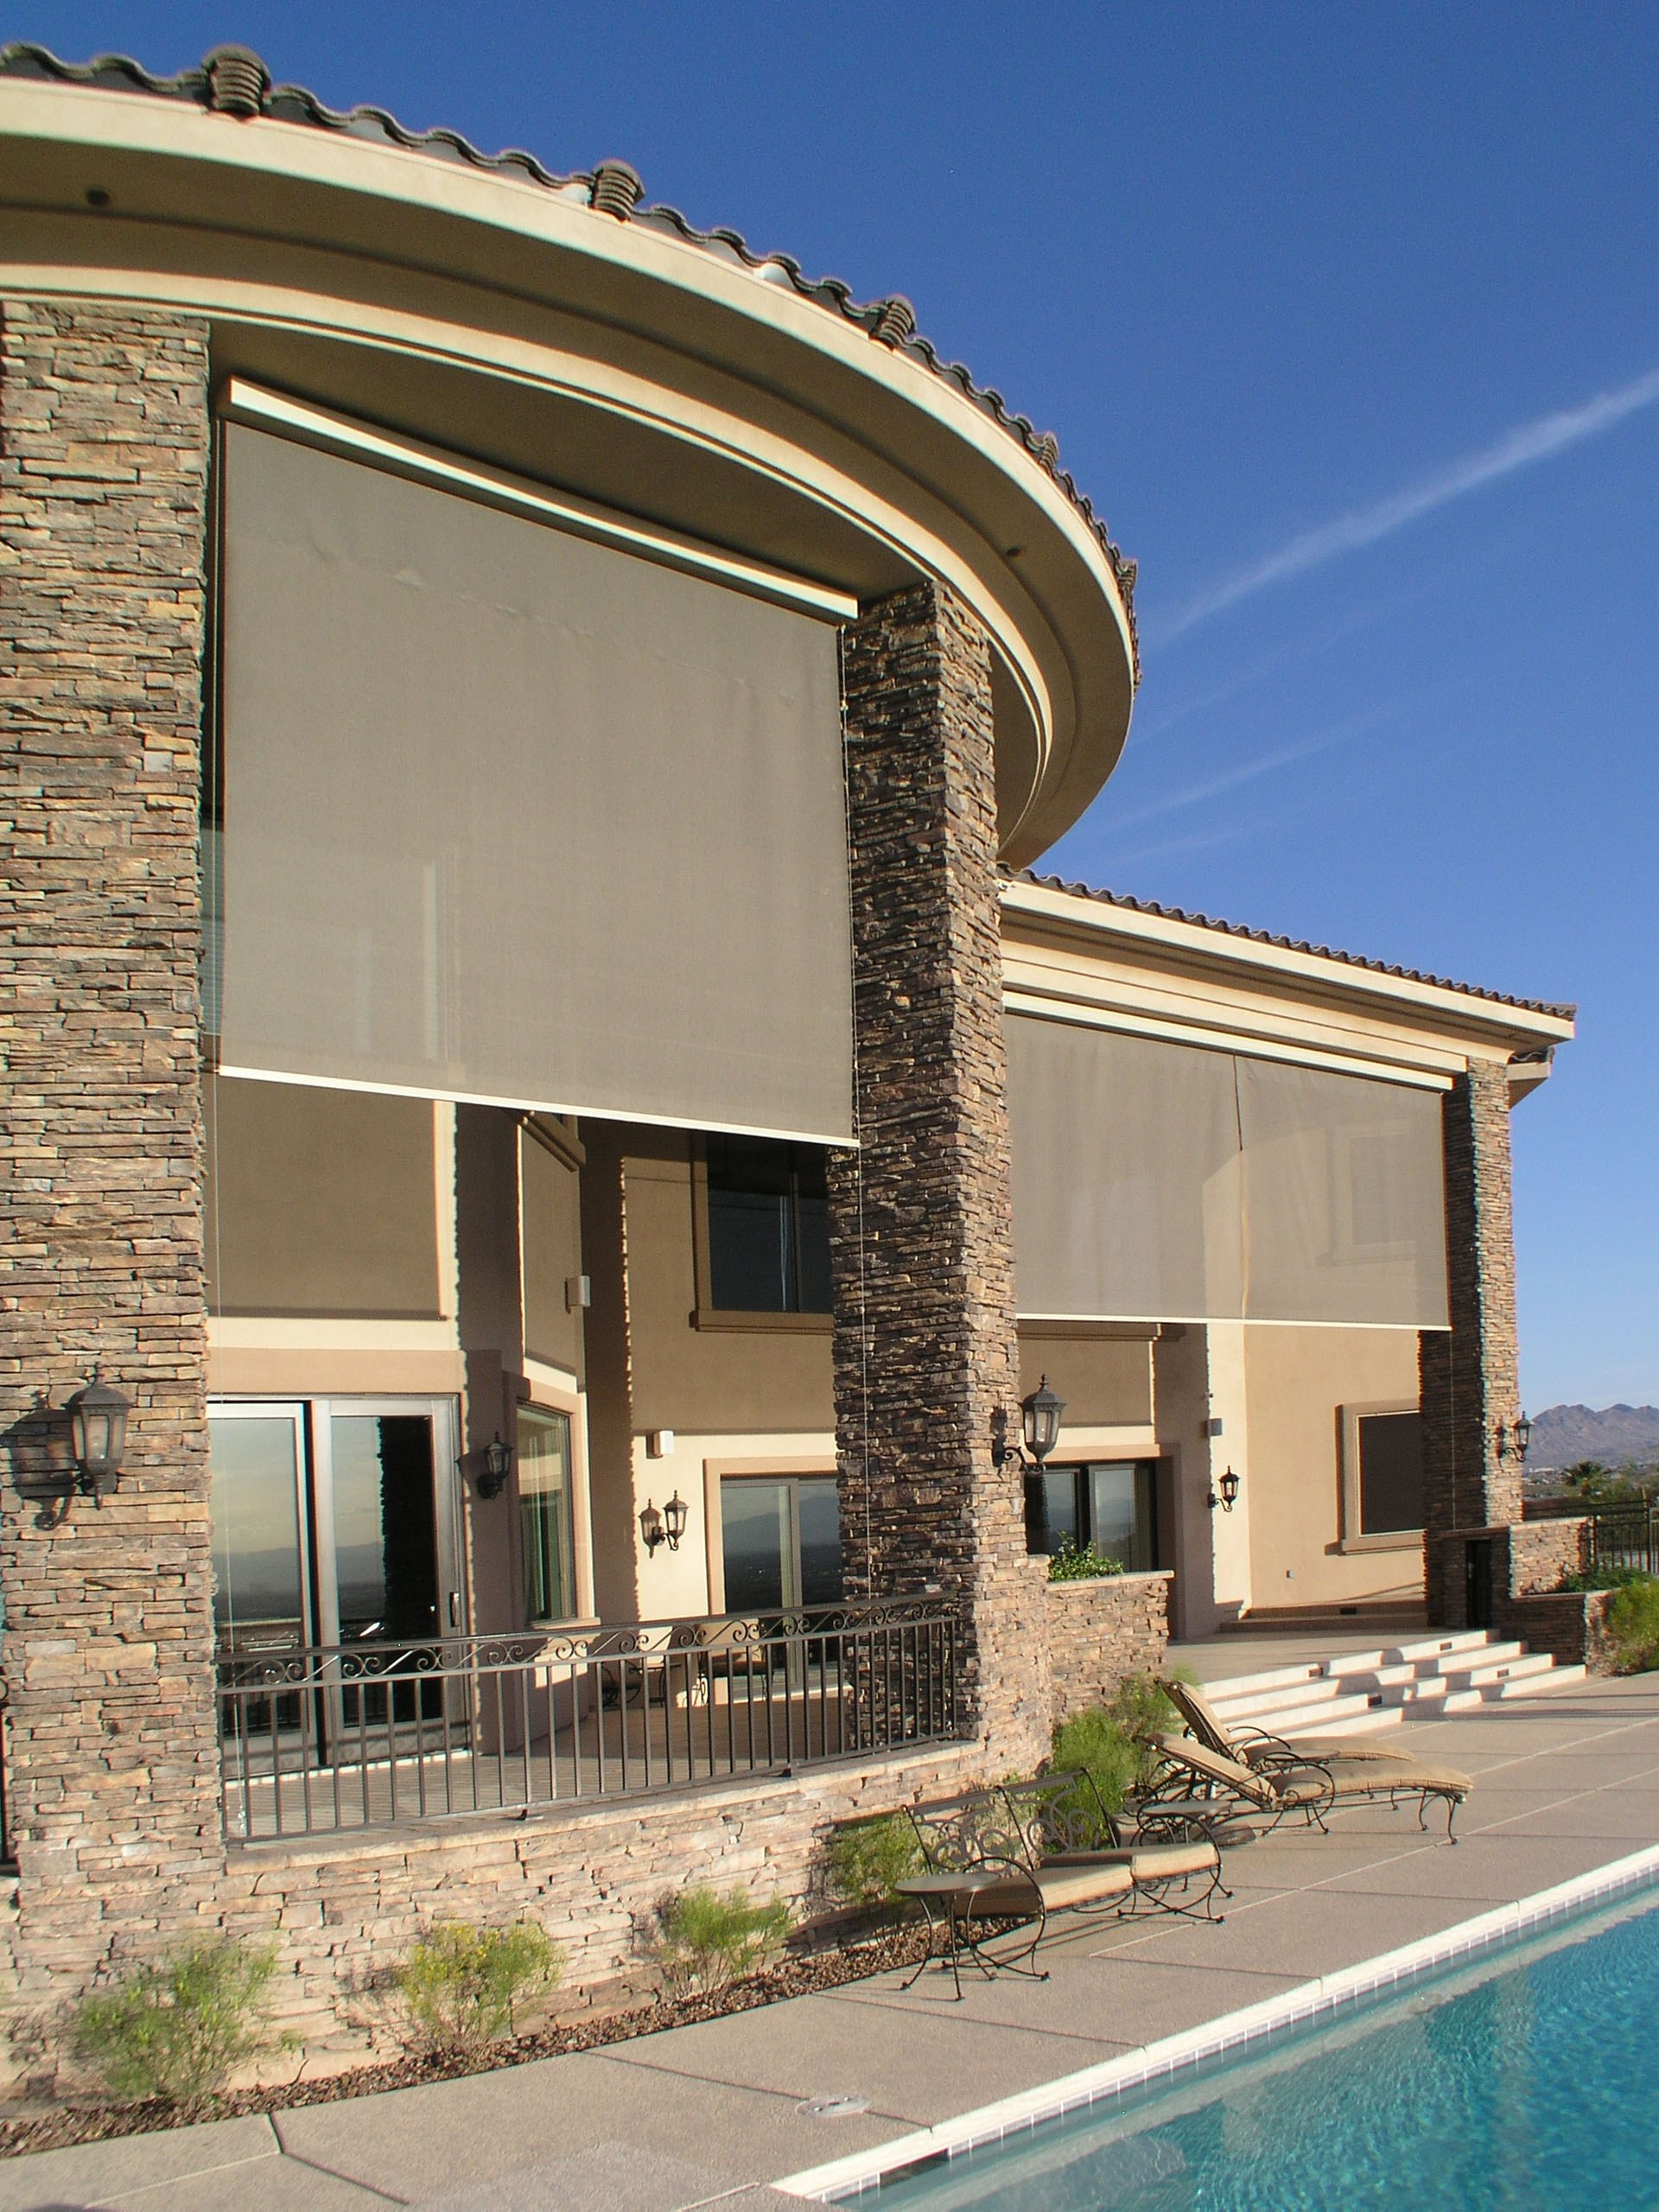 Get the Best Exterior Motorized Shade for Your Home at Polar Shades